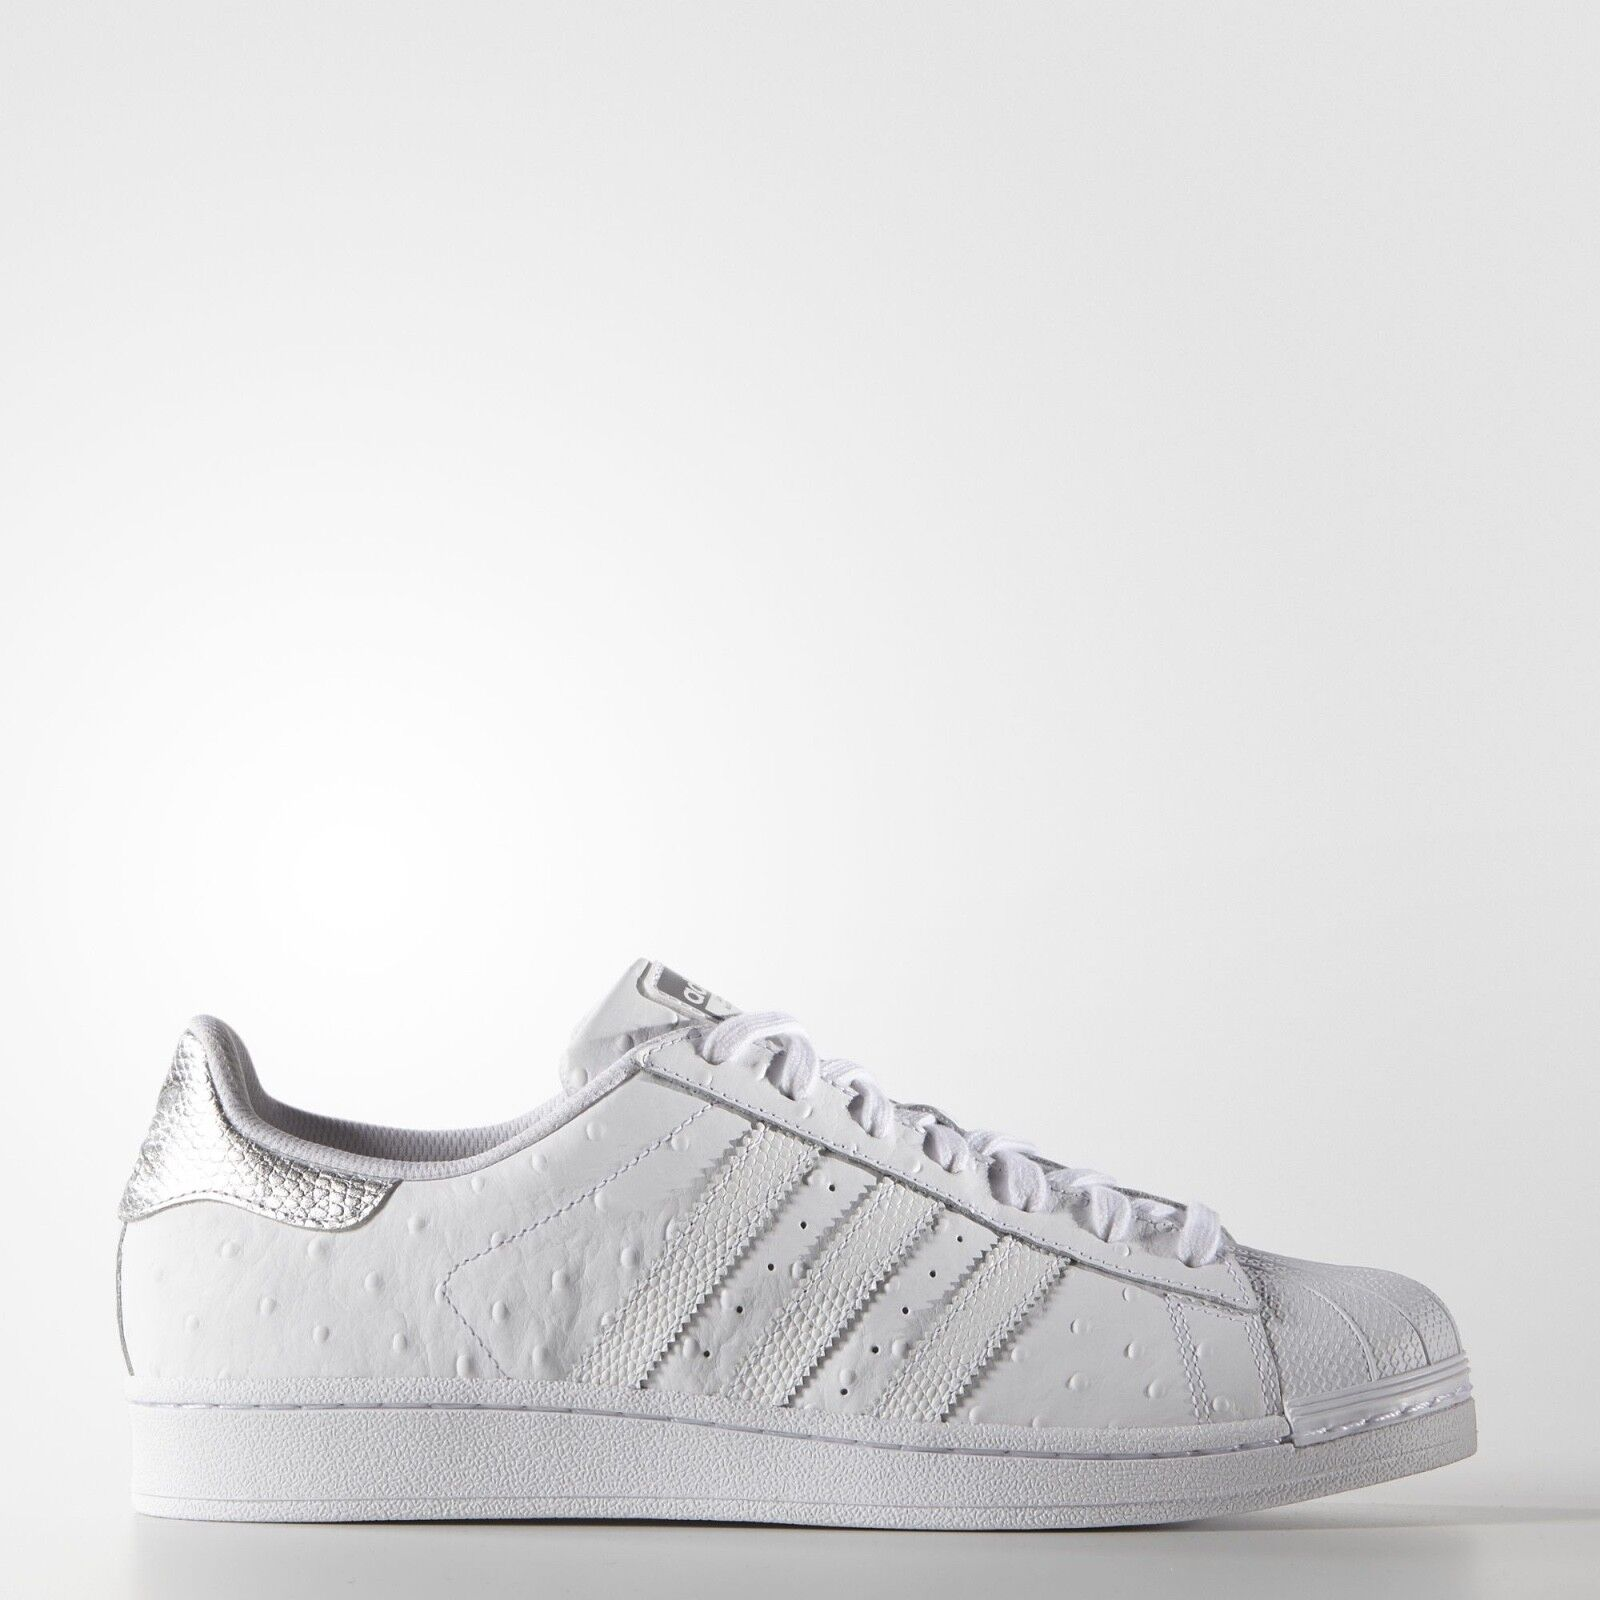 NEW Men's Adidas Superstar shoes color  White Size  10.5